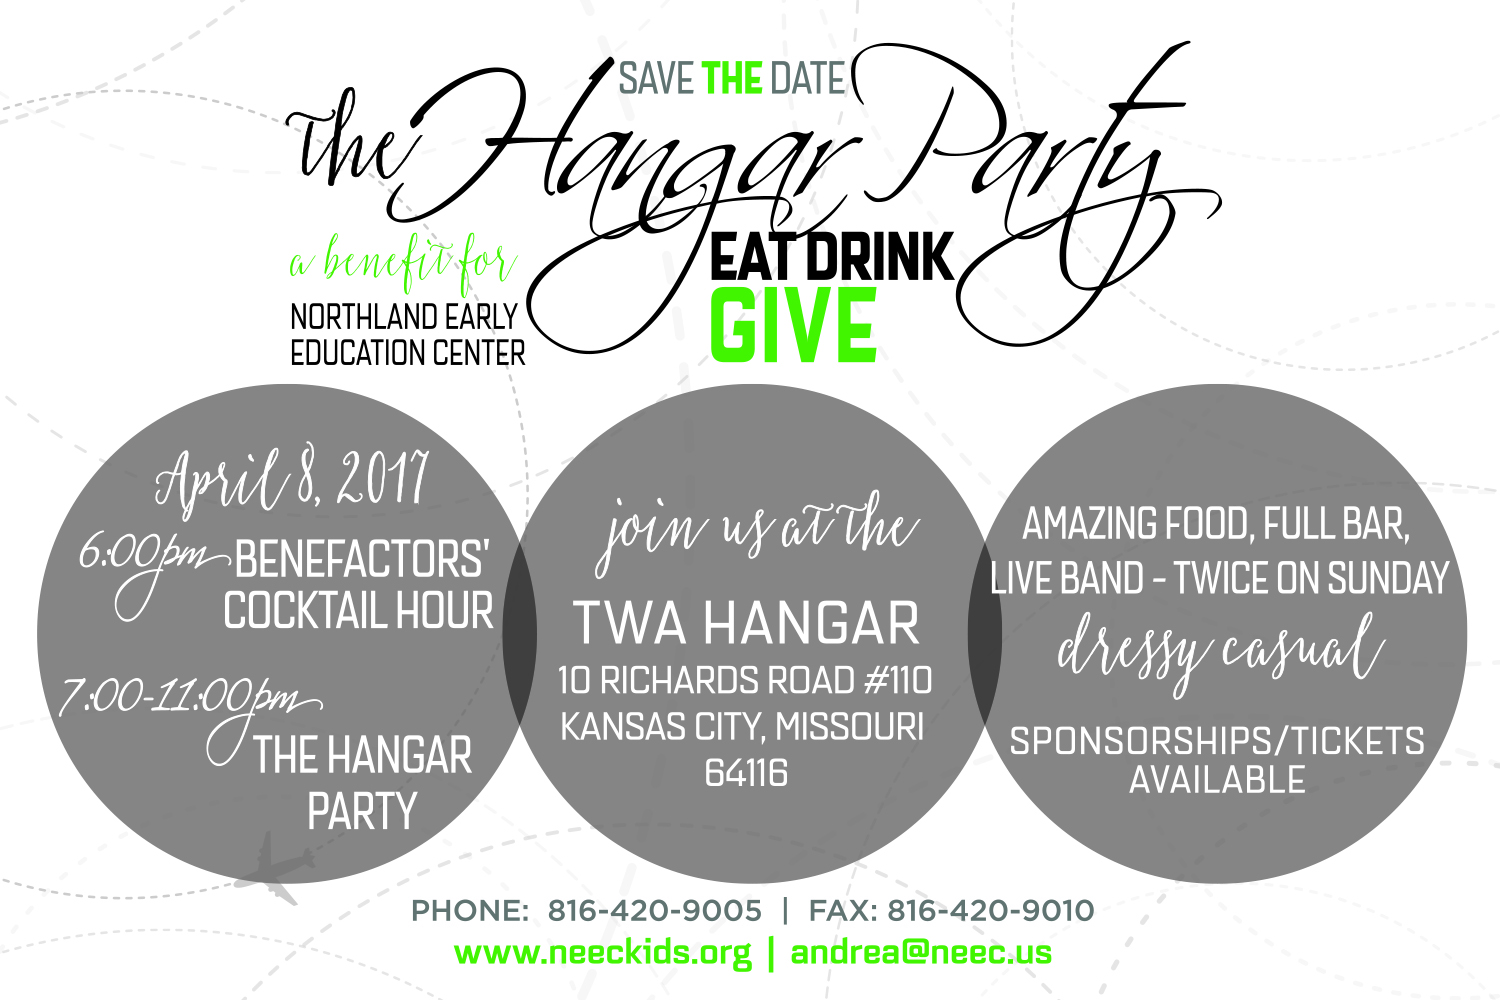 NEEC_HangarParty_SaveTheDate6x4